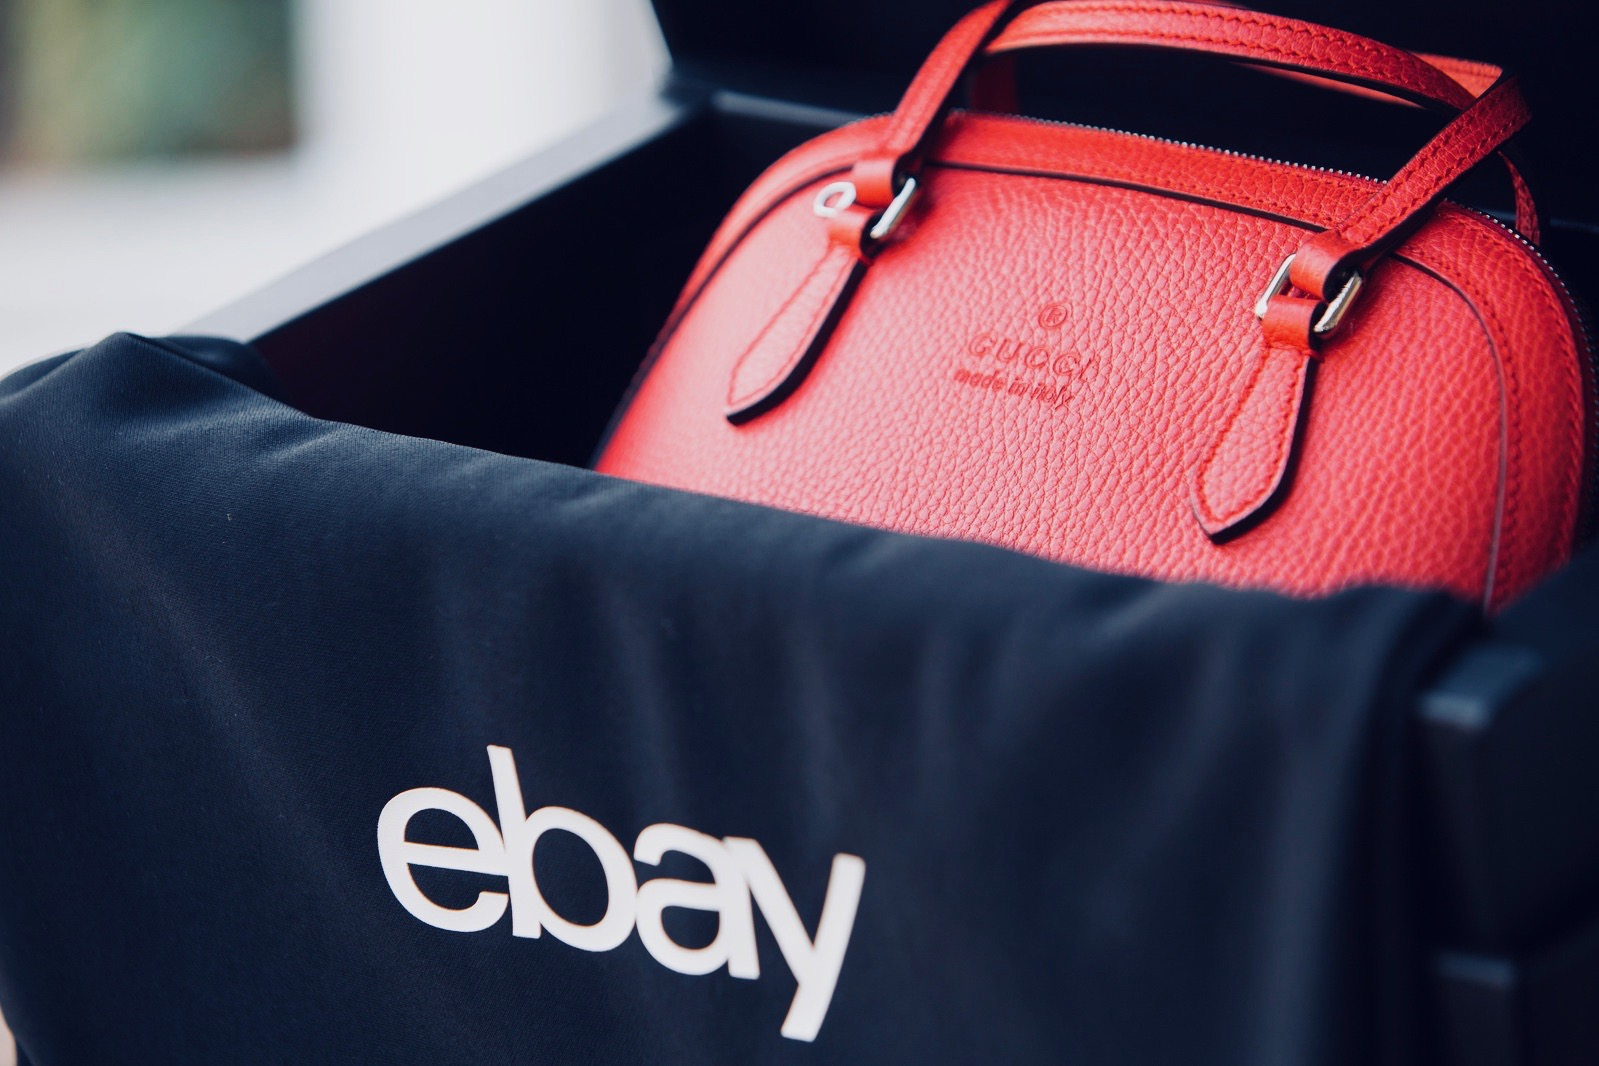 Launch of eBay Authenticateô Boosts Shopper Confidence for Luxury Handbag Purchases (PRNewsfoto/eBay Inc.)